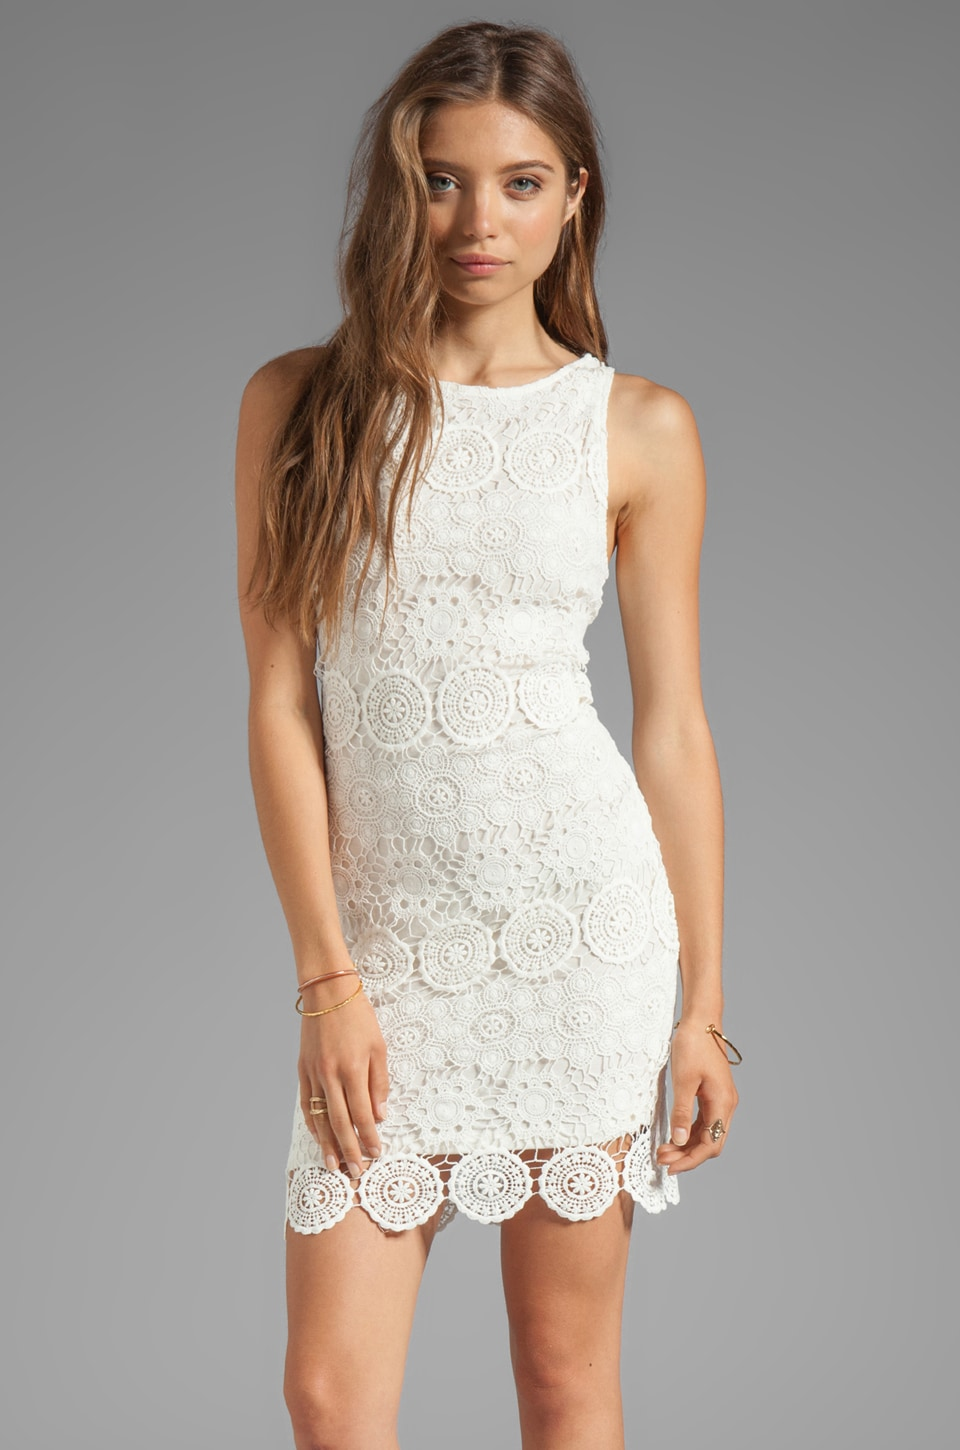 Sanctuary Modern Nomad Lace Shift Dress in White